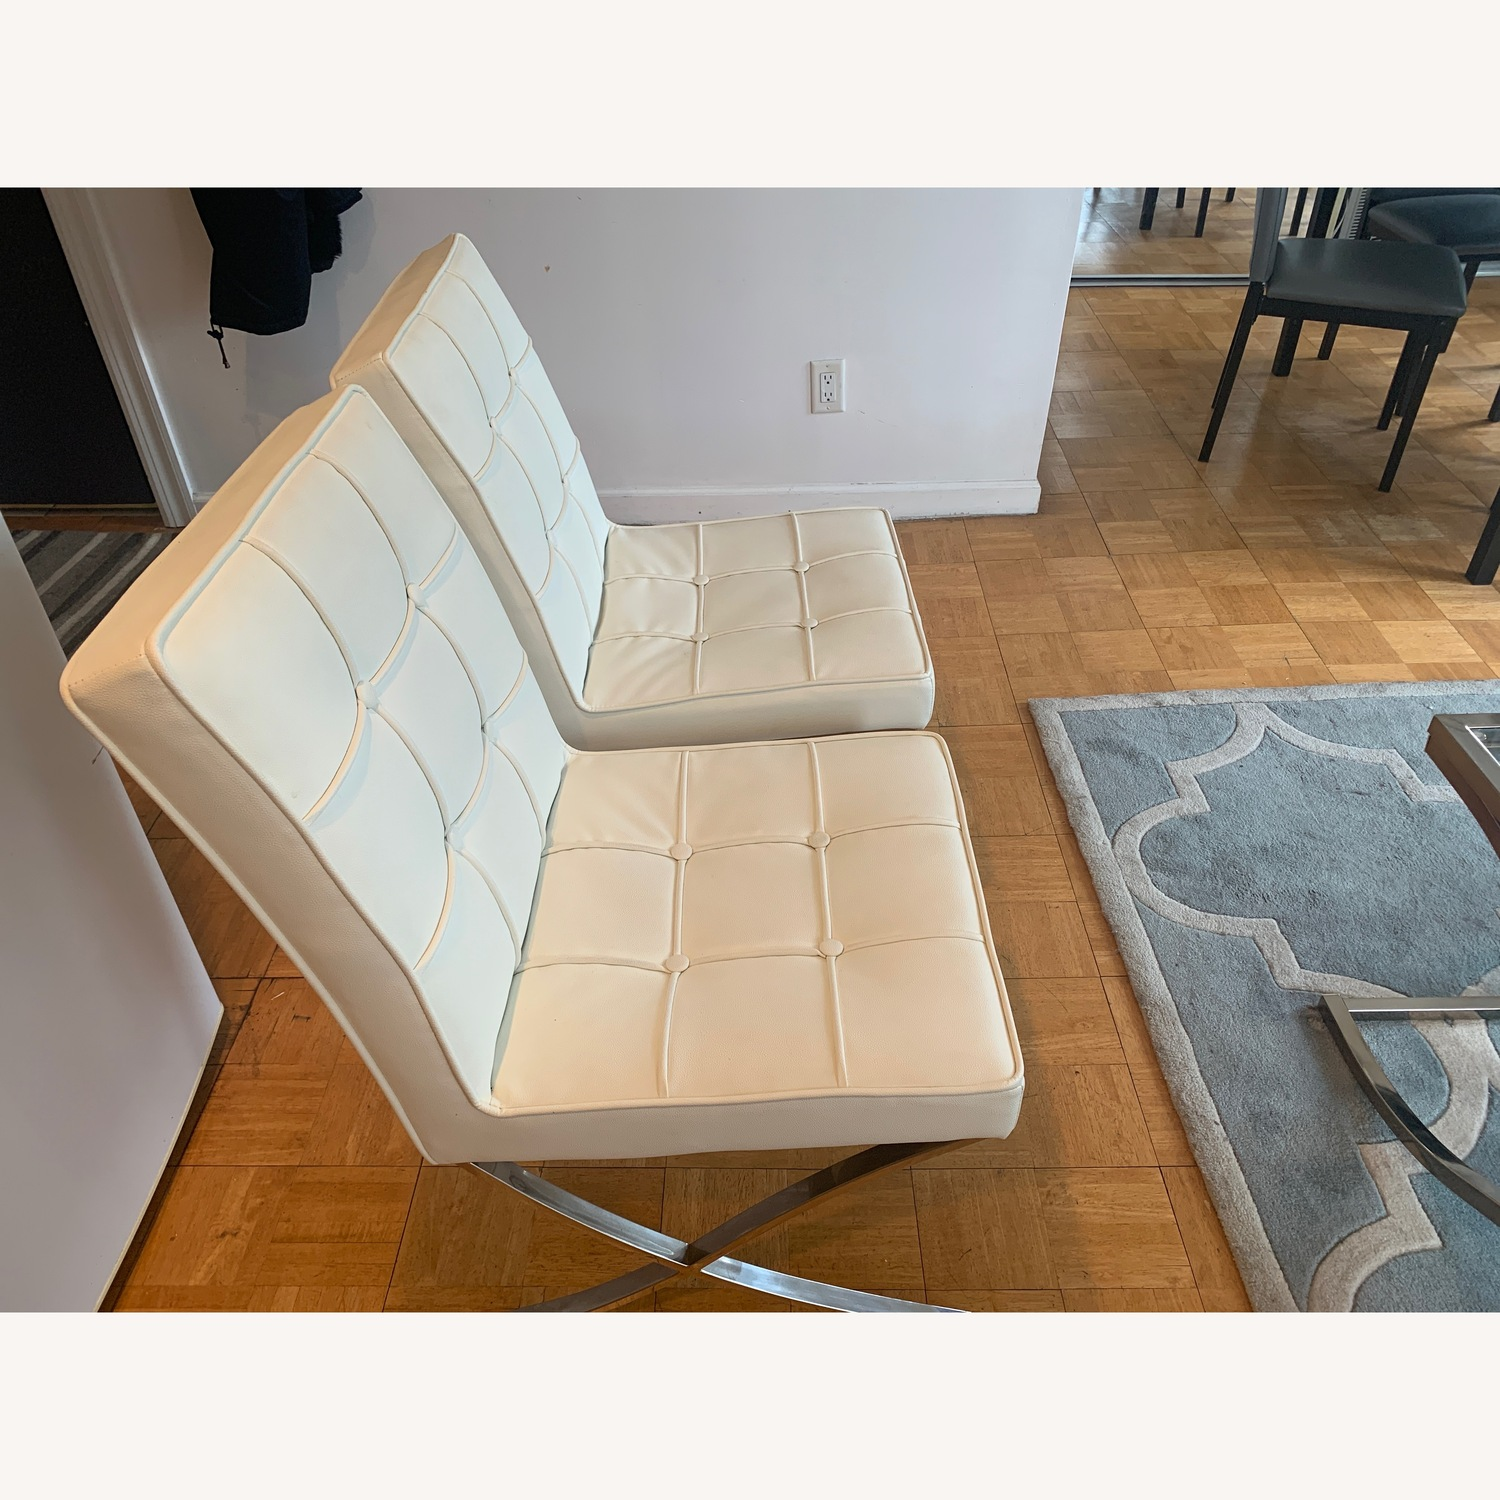 Christopher Knight Tufted Leather Accent Chairs